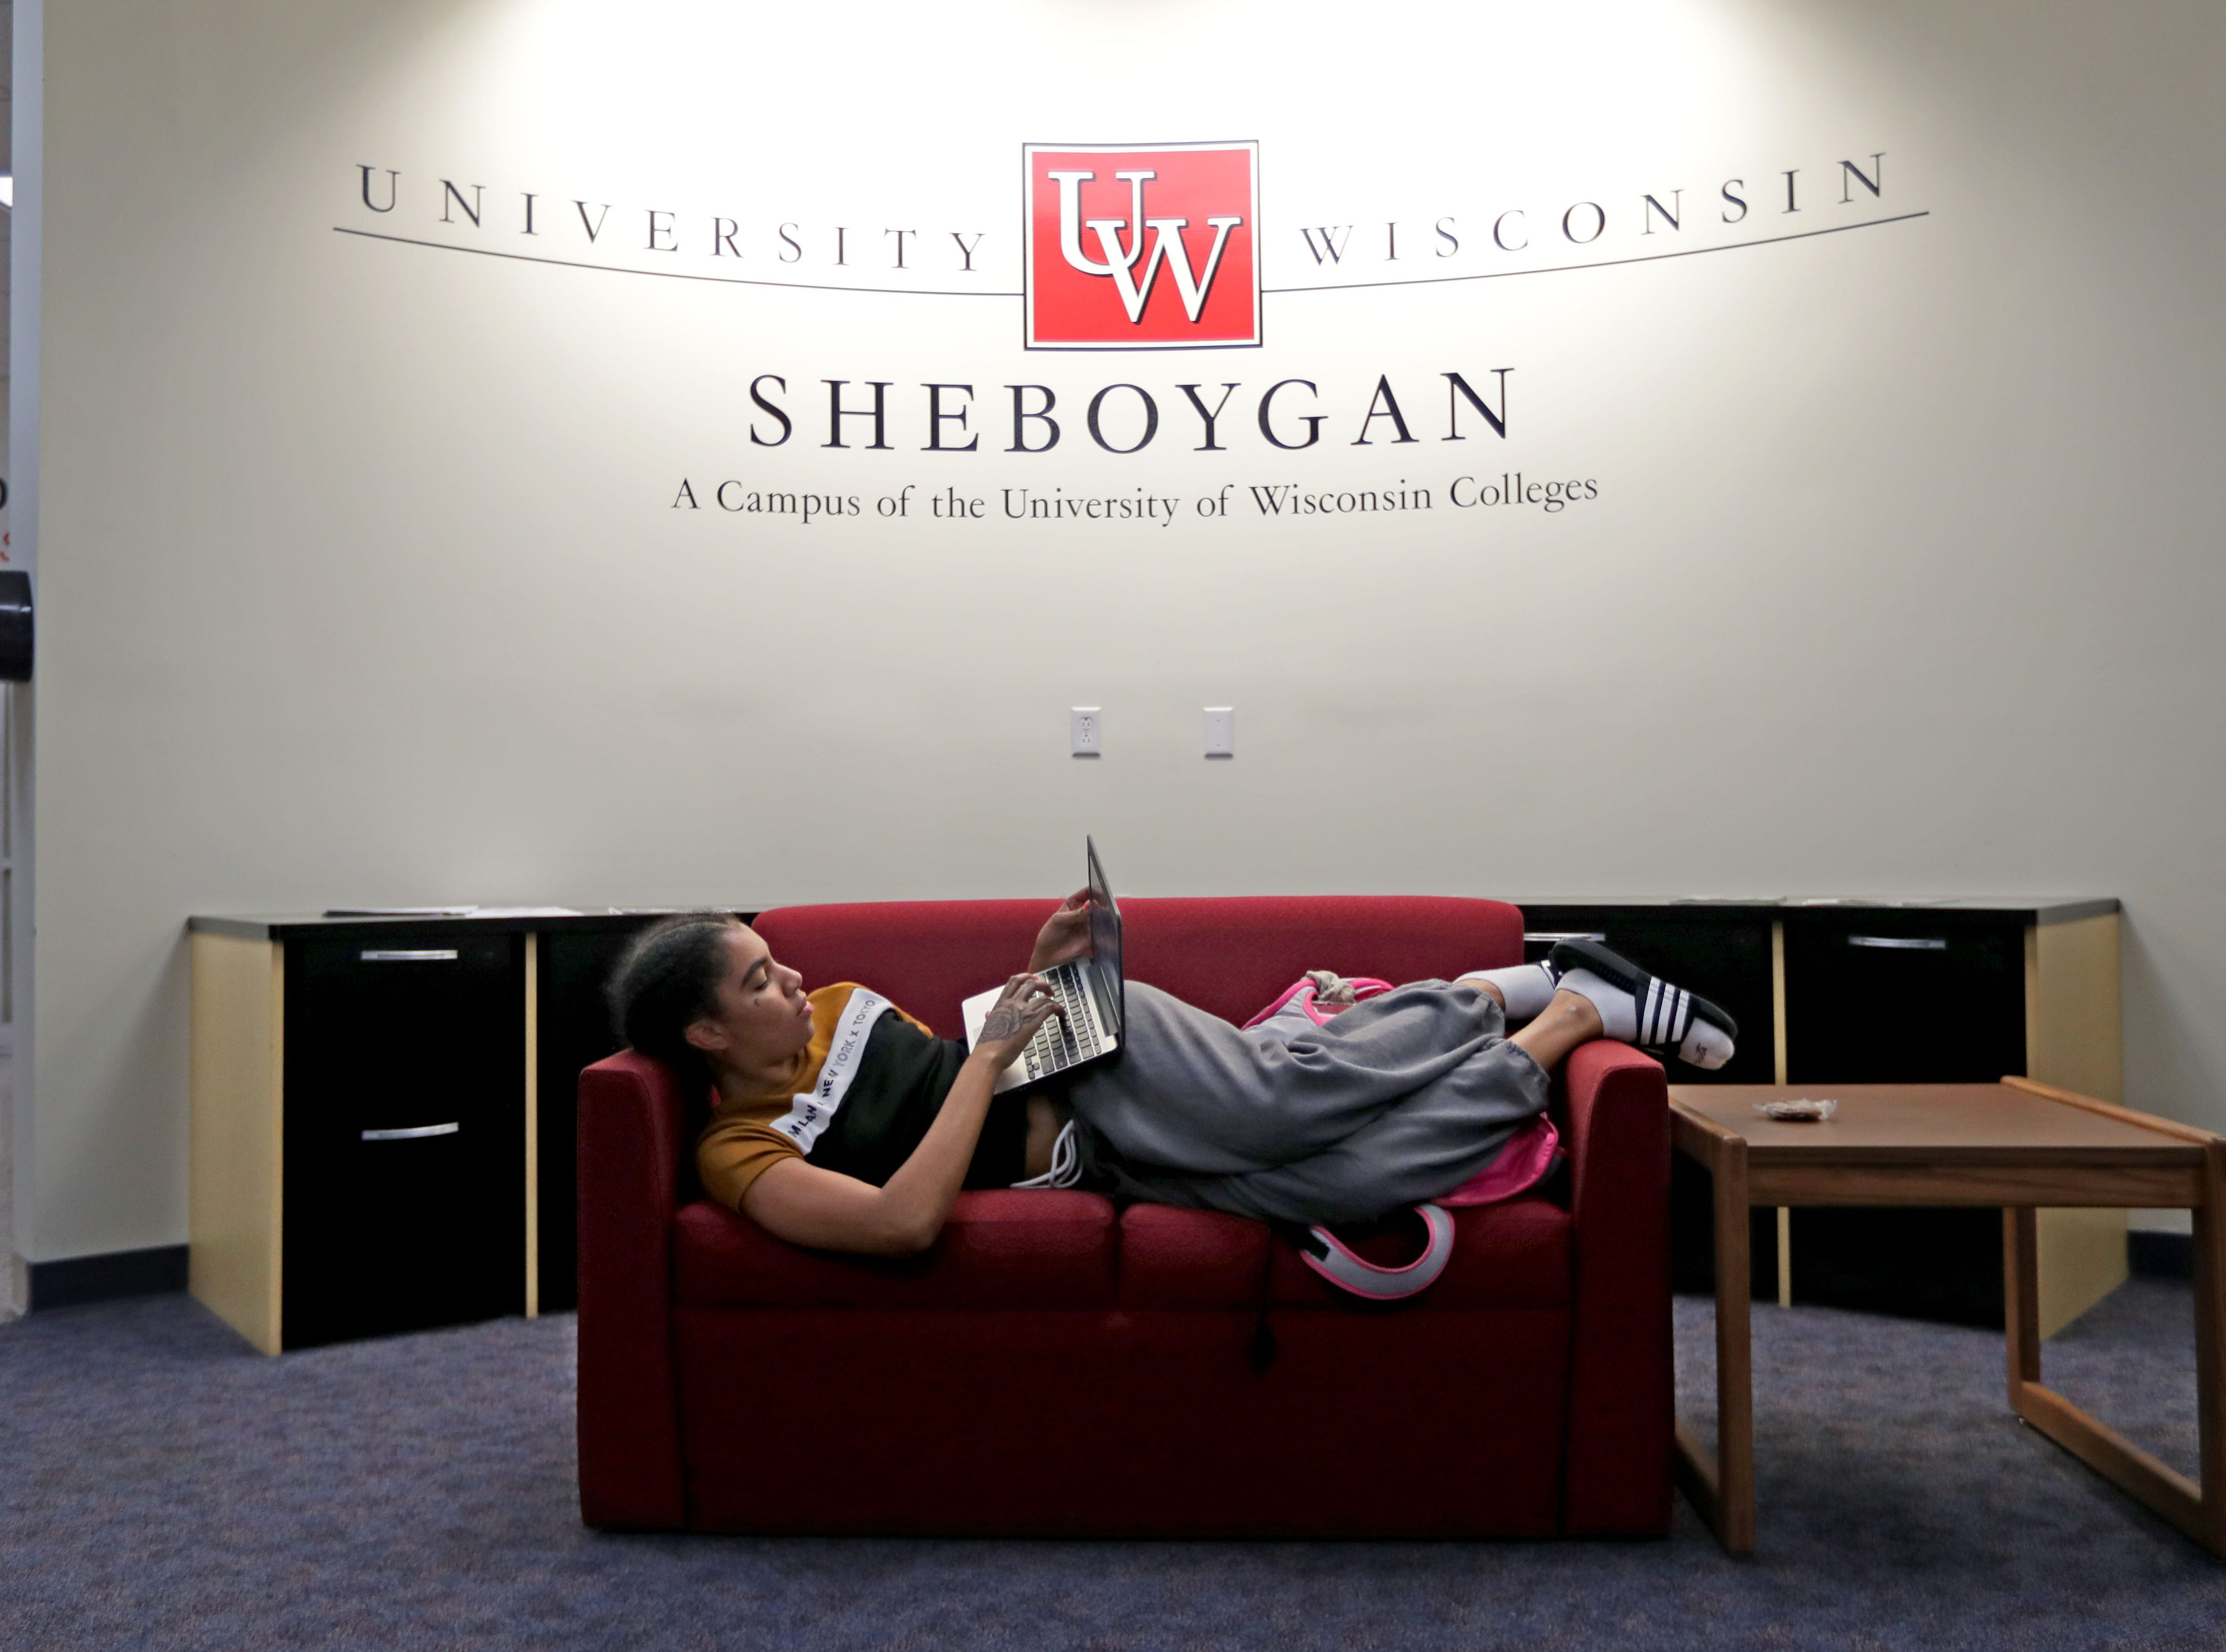 Taniza Tabbert, a University of Wisconsin-Green Bay, Sheboygan Campus sophomore from Fond du Lac, relaxes while working on her laptop before a class.